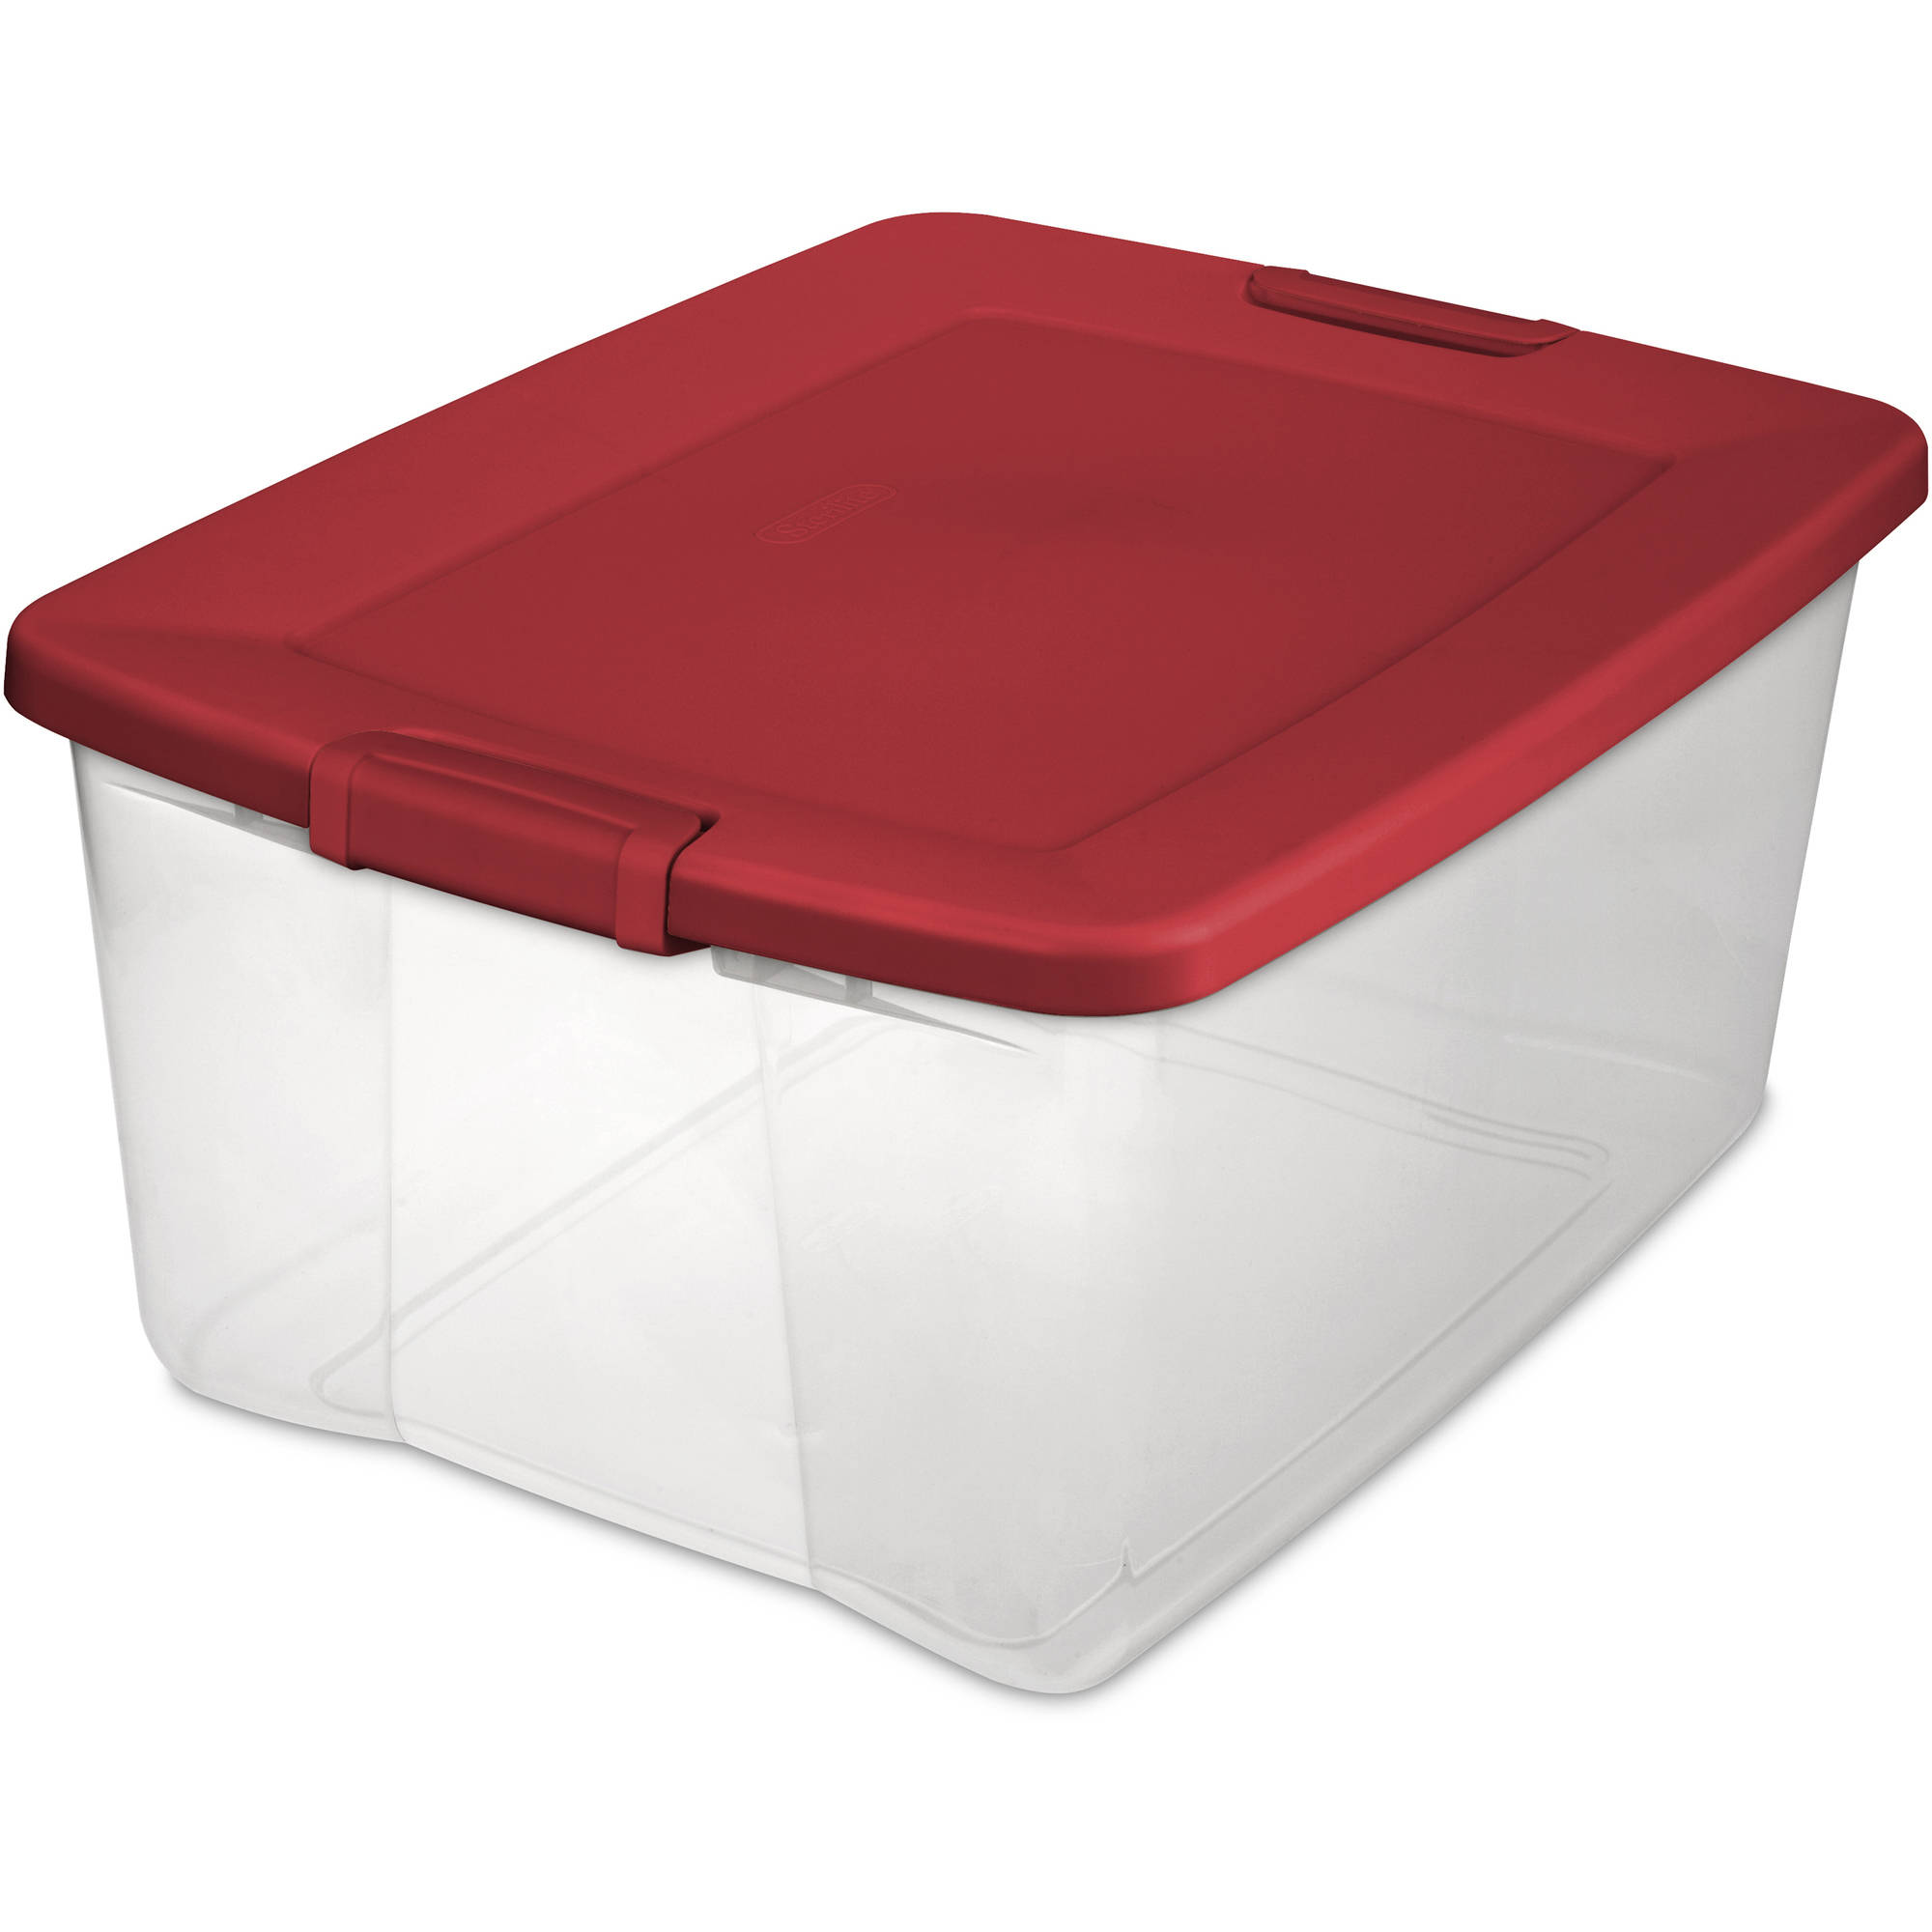 Sterilite 65-Quart Latch Box, Infra Red (Available in Case of 6 or Single Unit)